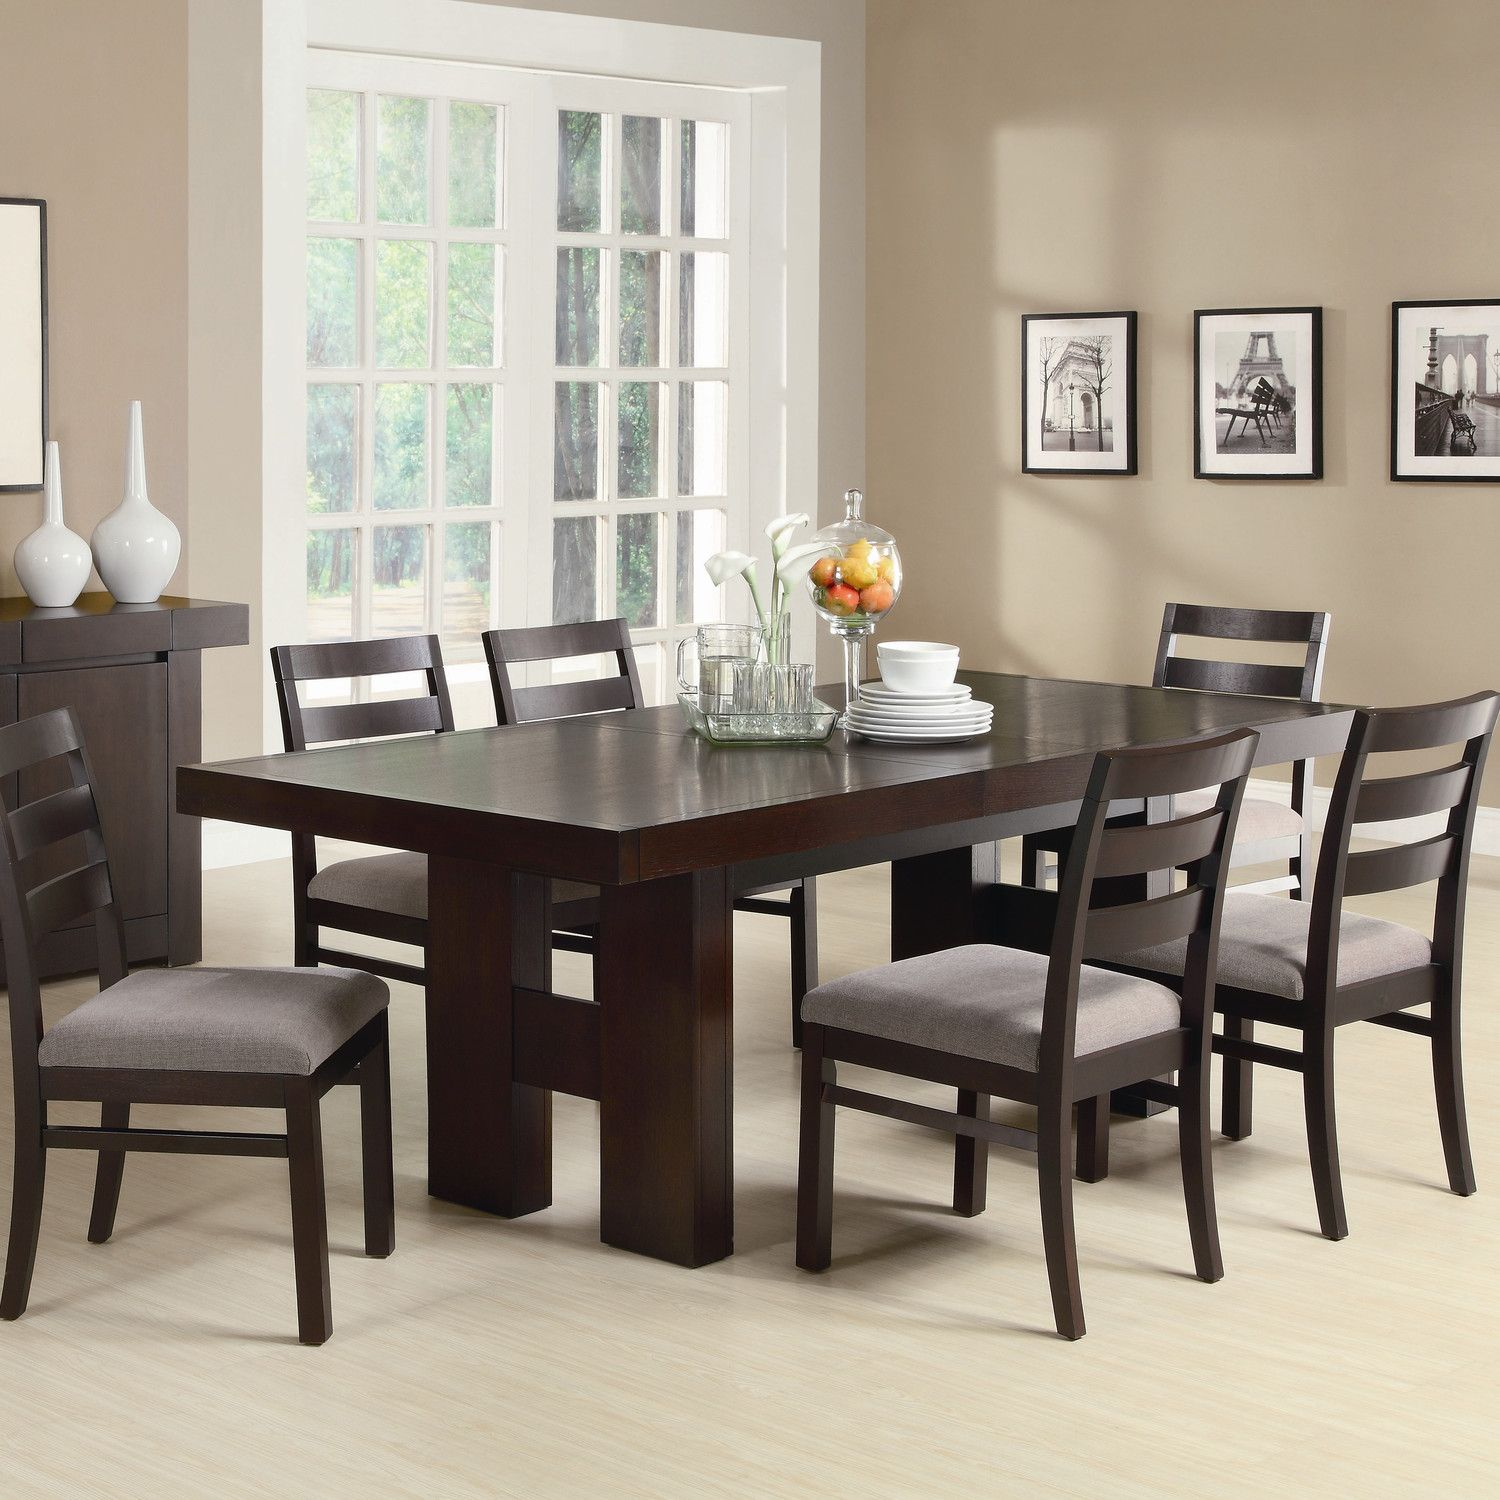 Gertrude Solid Wood Dining Table Dark Wood Dining Table Dining